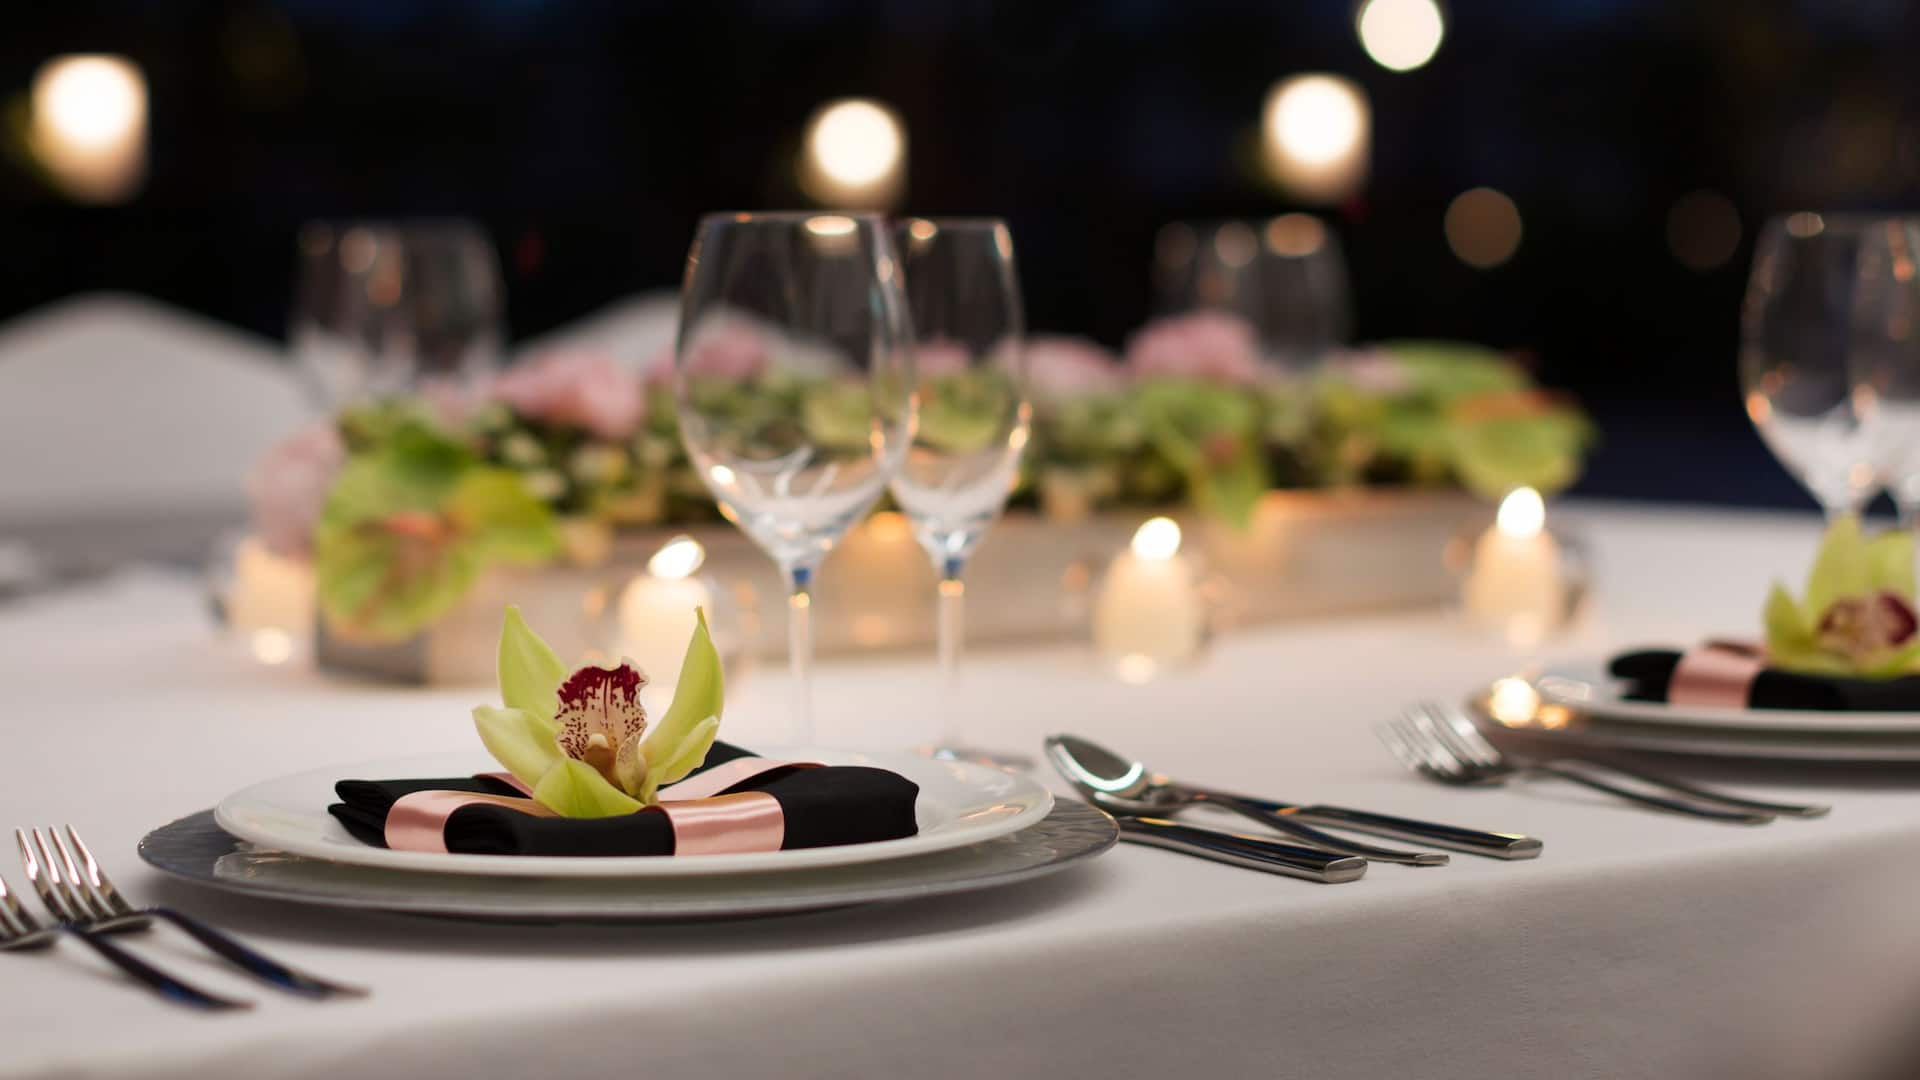 Plan your Wedding, Special Event, or Catering with Grand Hyatt Incheon